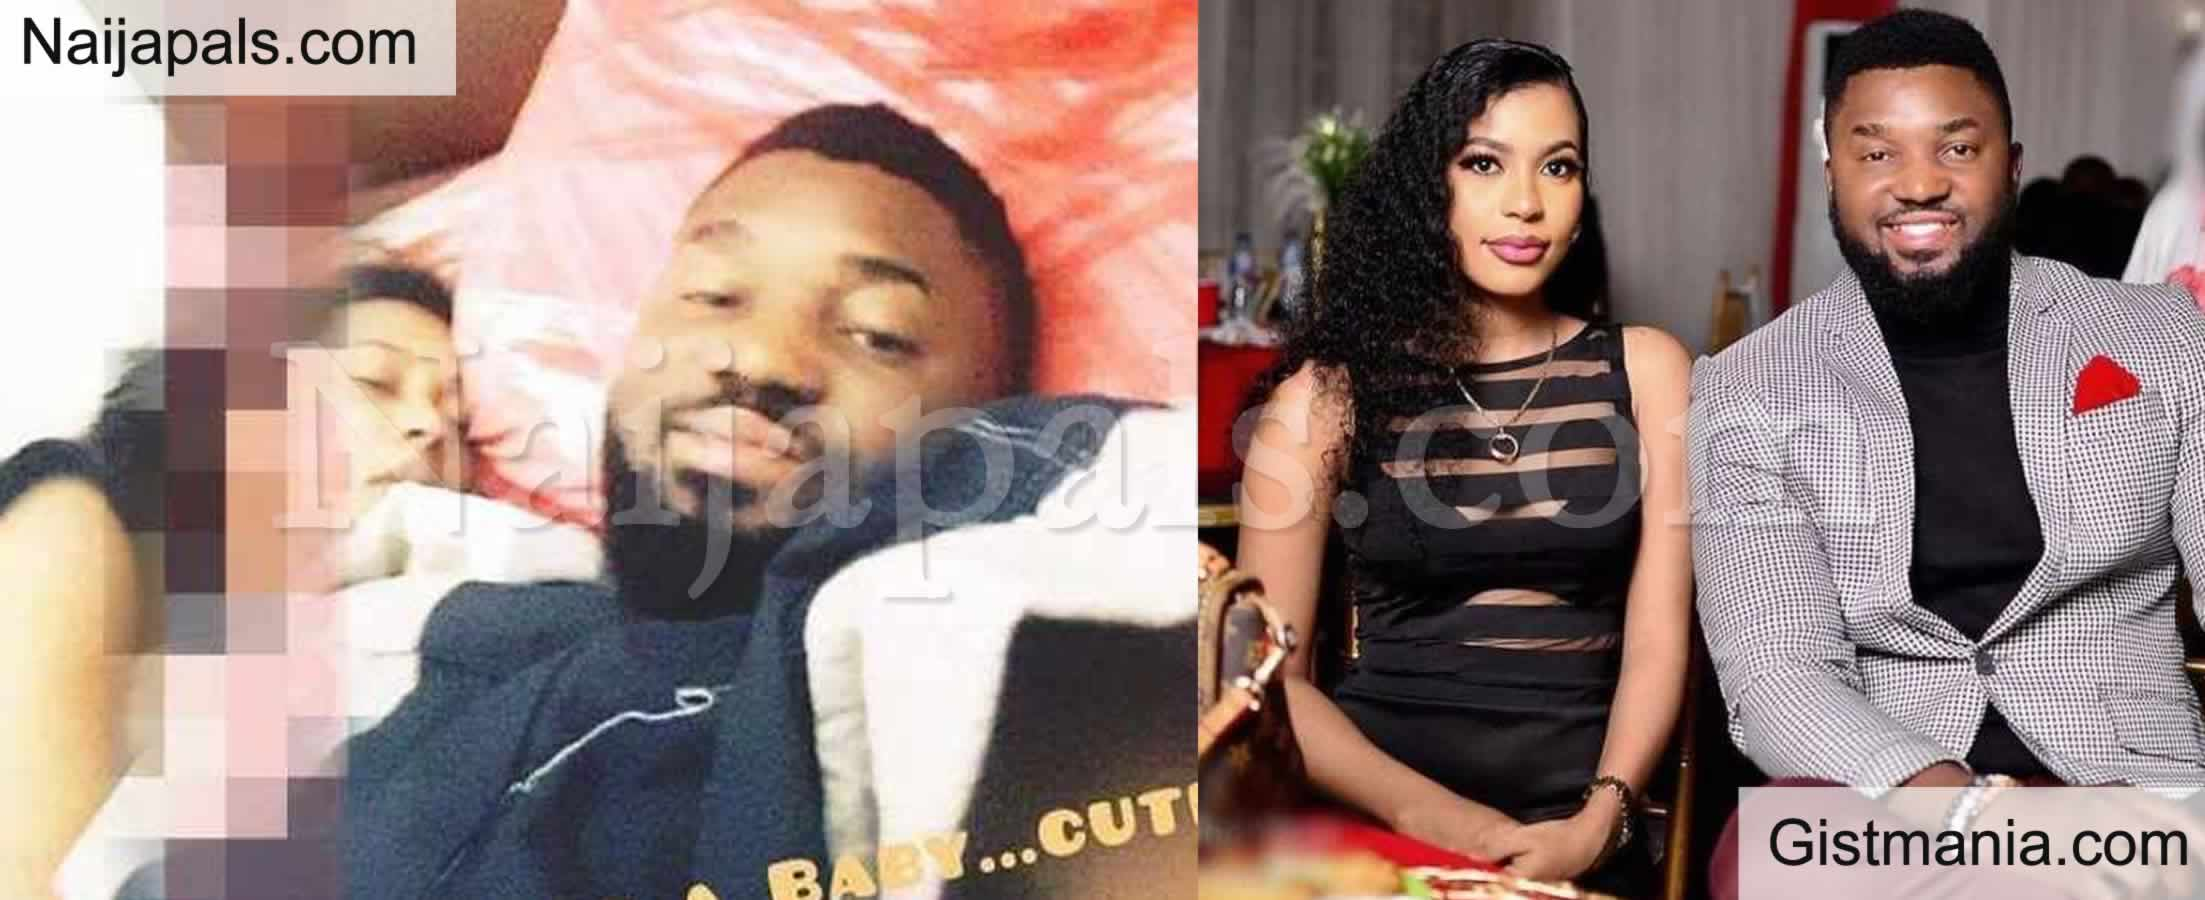 <img alt='.' class='lazyload' data-src='https://img.gistmania.com/emot/comment.gif' /> BBNaija: <b>Photos Of Saga's In-House Crush Nini and Her Boyfriend, Shojay in Bed Surface</b>